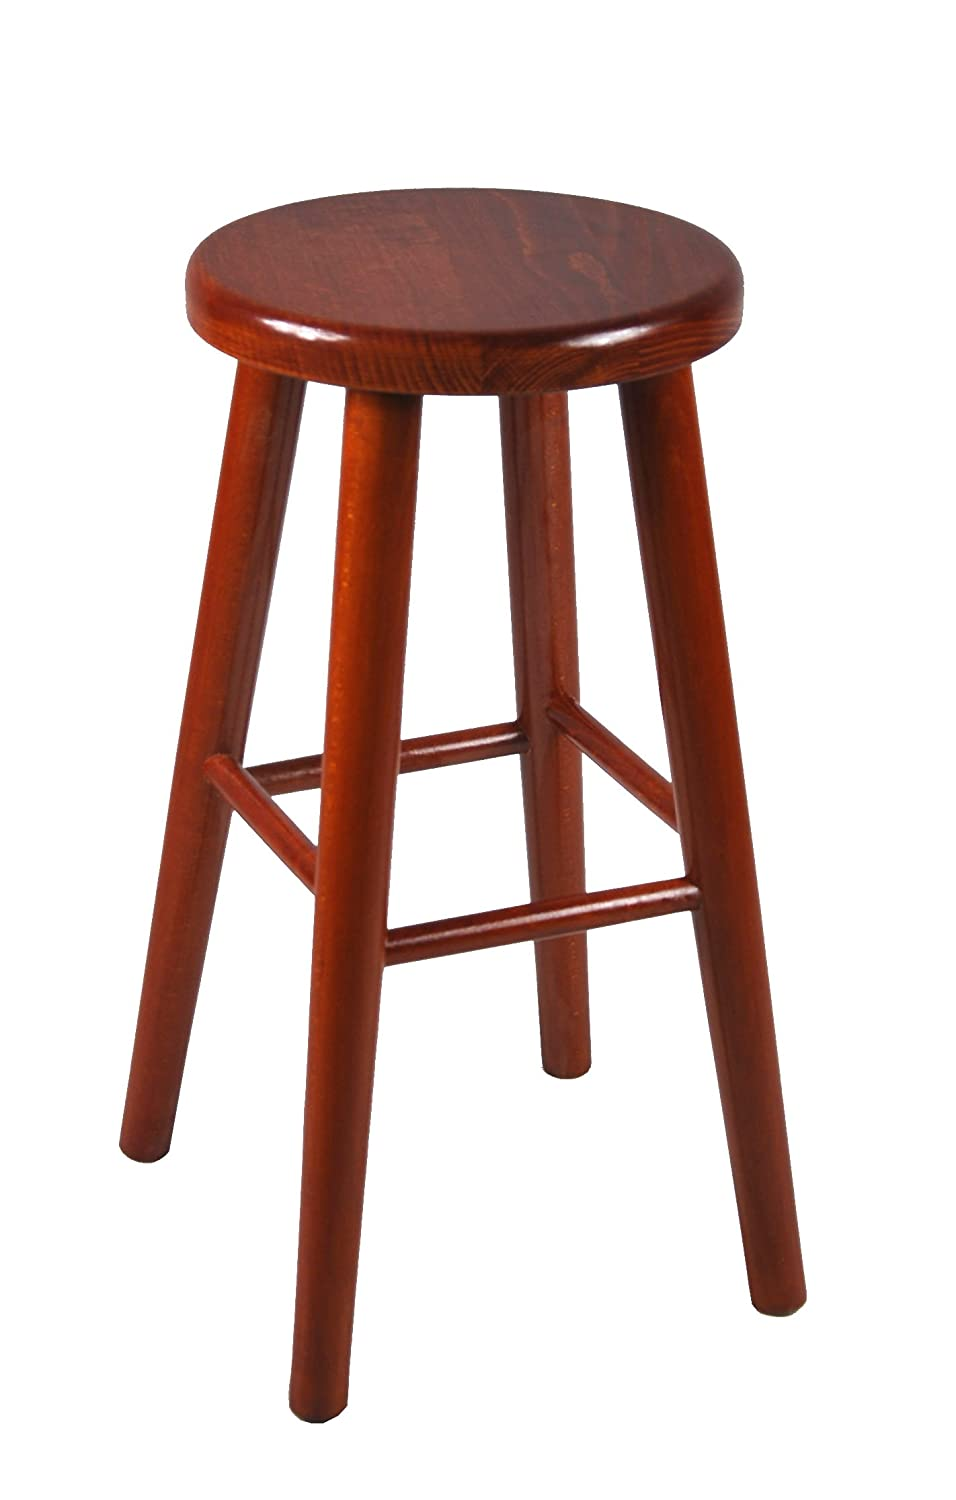 Bar stool wooden chair brand new beech solid wood bar pub new 60 cm (walnut) Magnetic Mobel